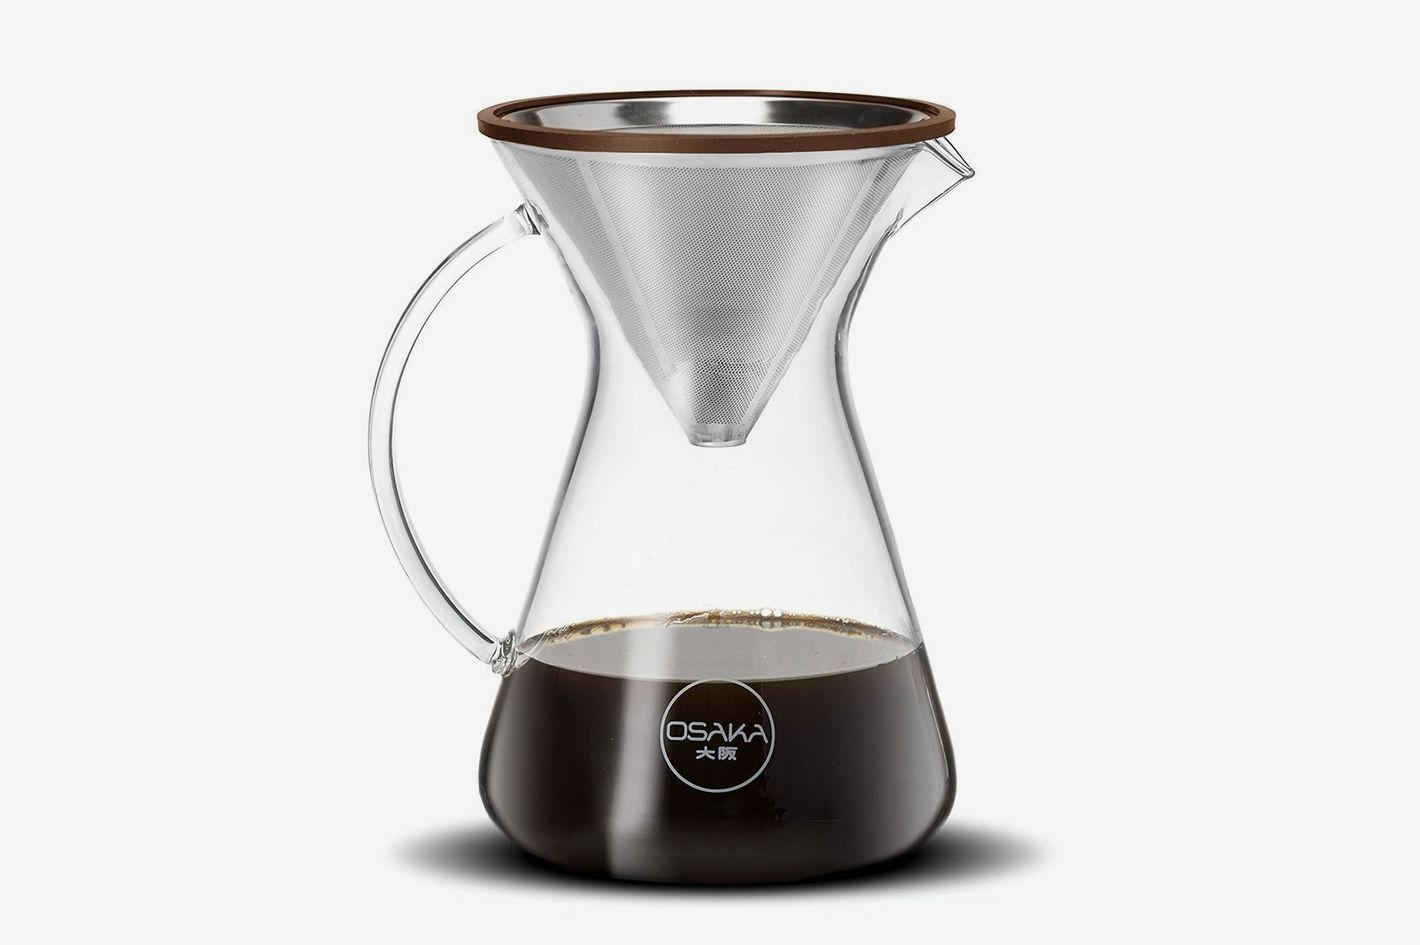 Osaka Pour-Over Coffee Brewer